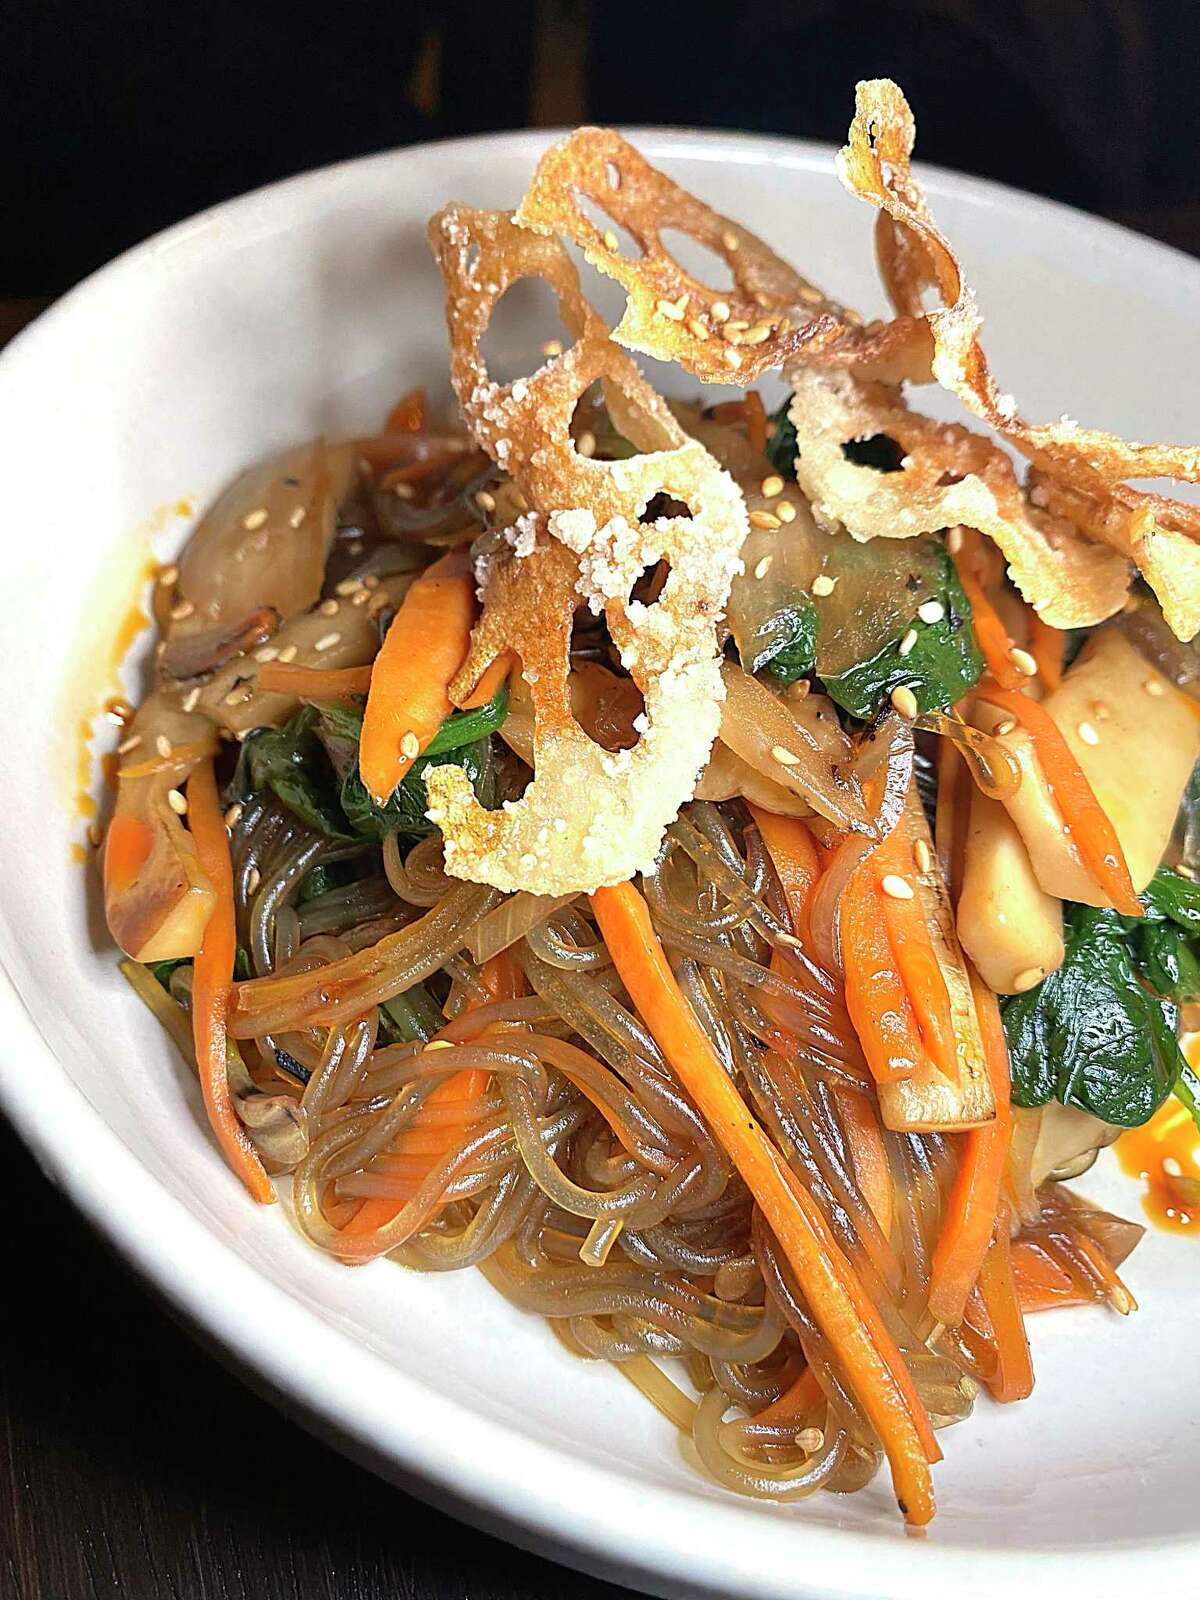 Japchae incorporates sweet potato glass noodles, spinach, carrots, onions and fried lotus chips at The Magpie.